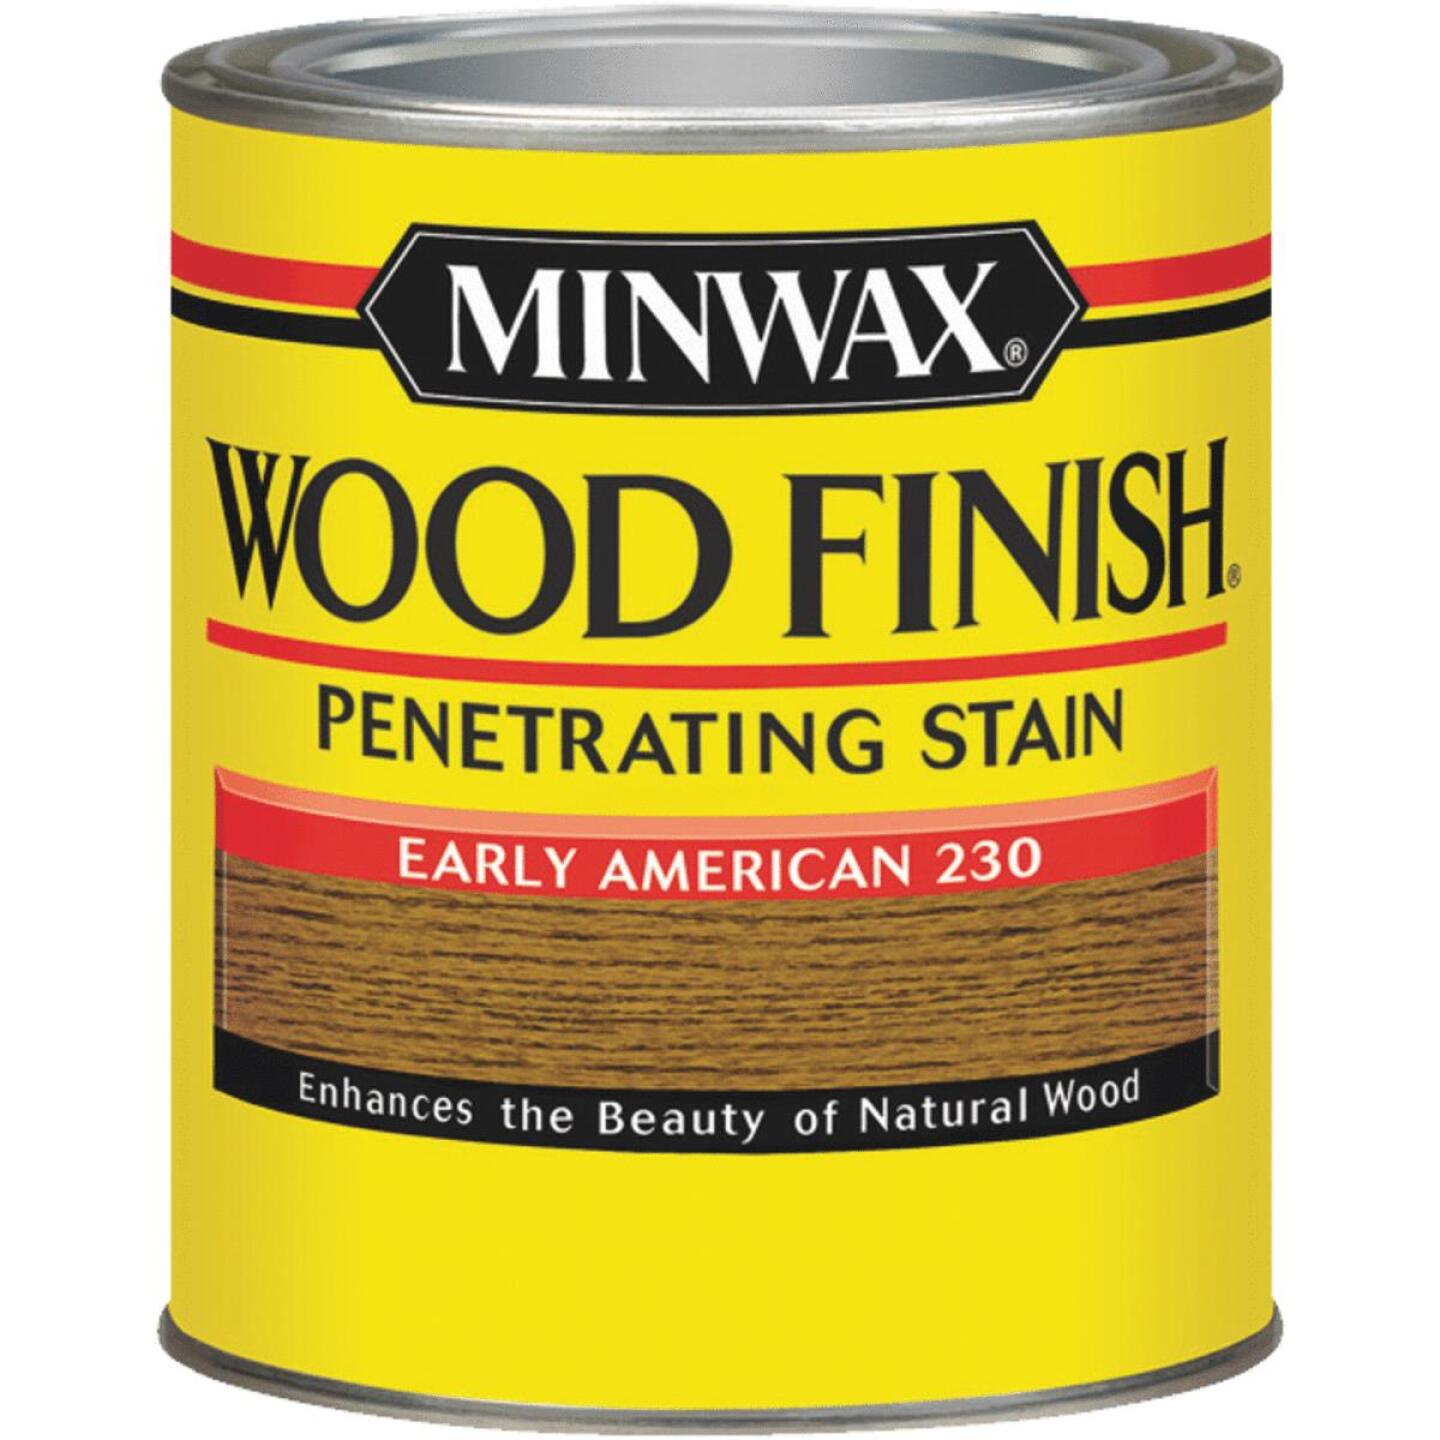 Minwax Wood Finish Penetrating Stain, Early American, 1/2 Pt. Image 1